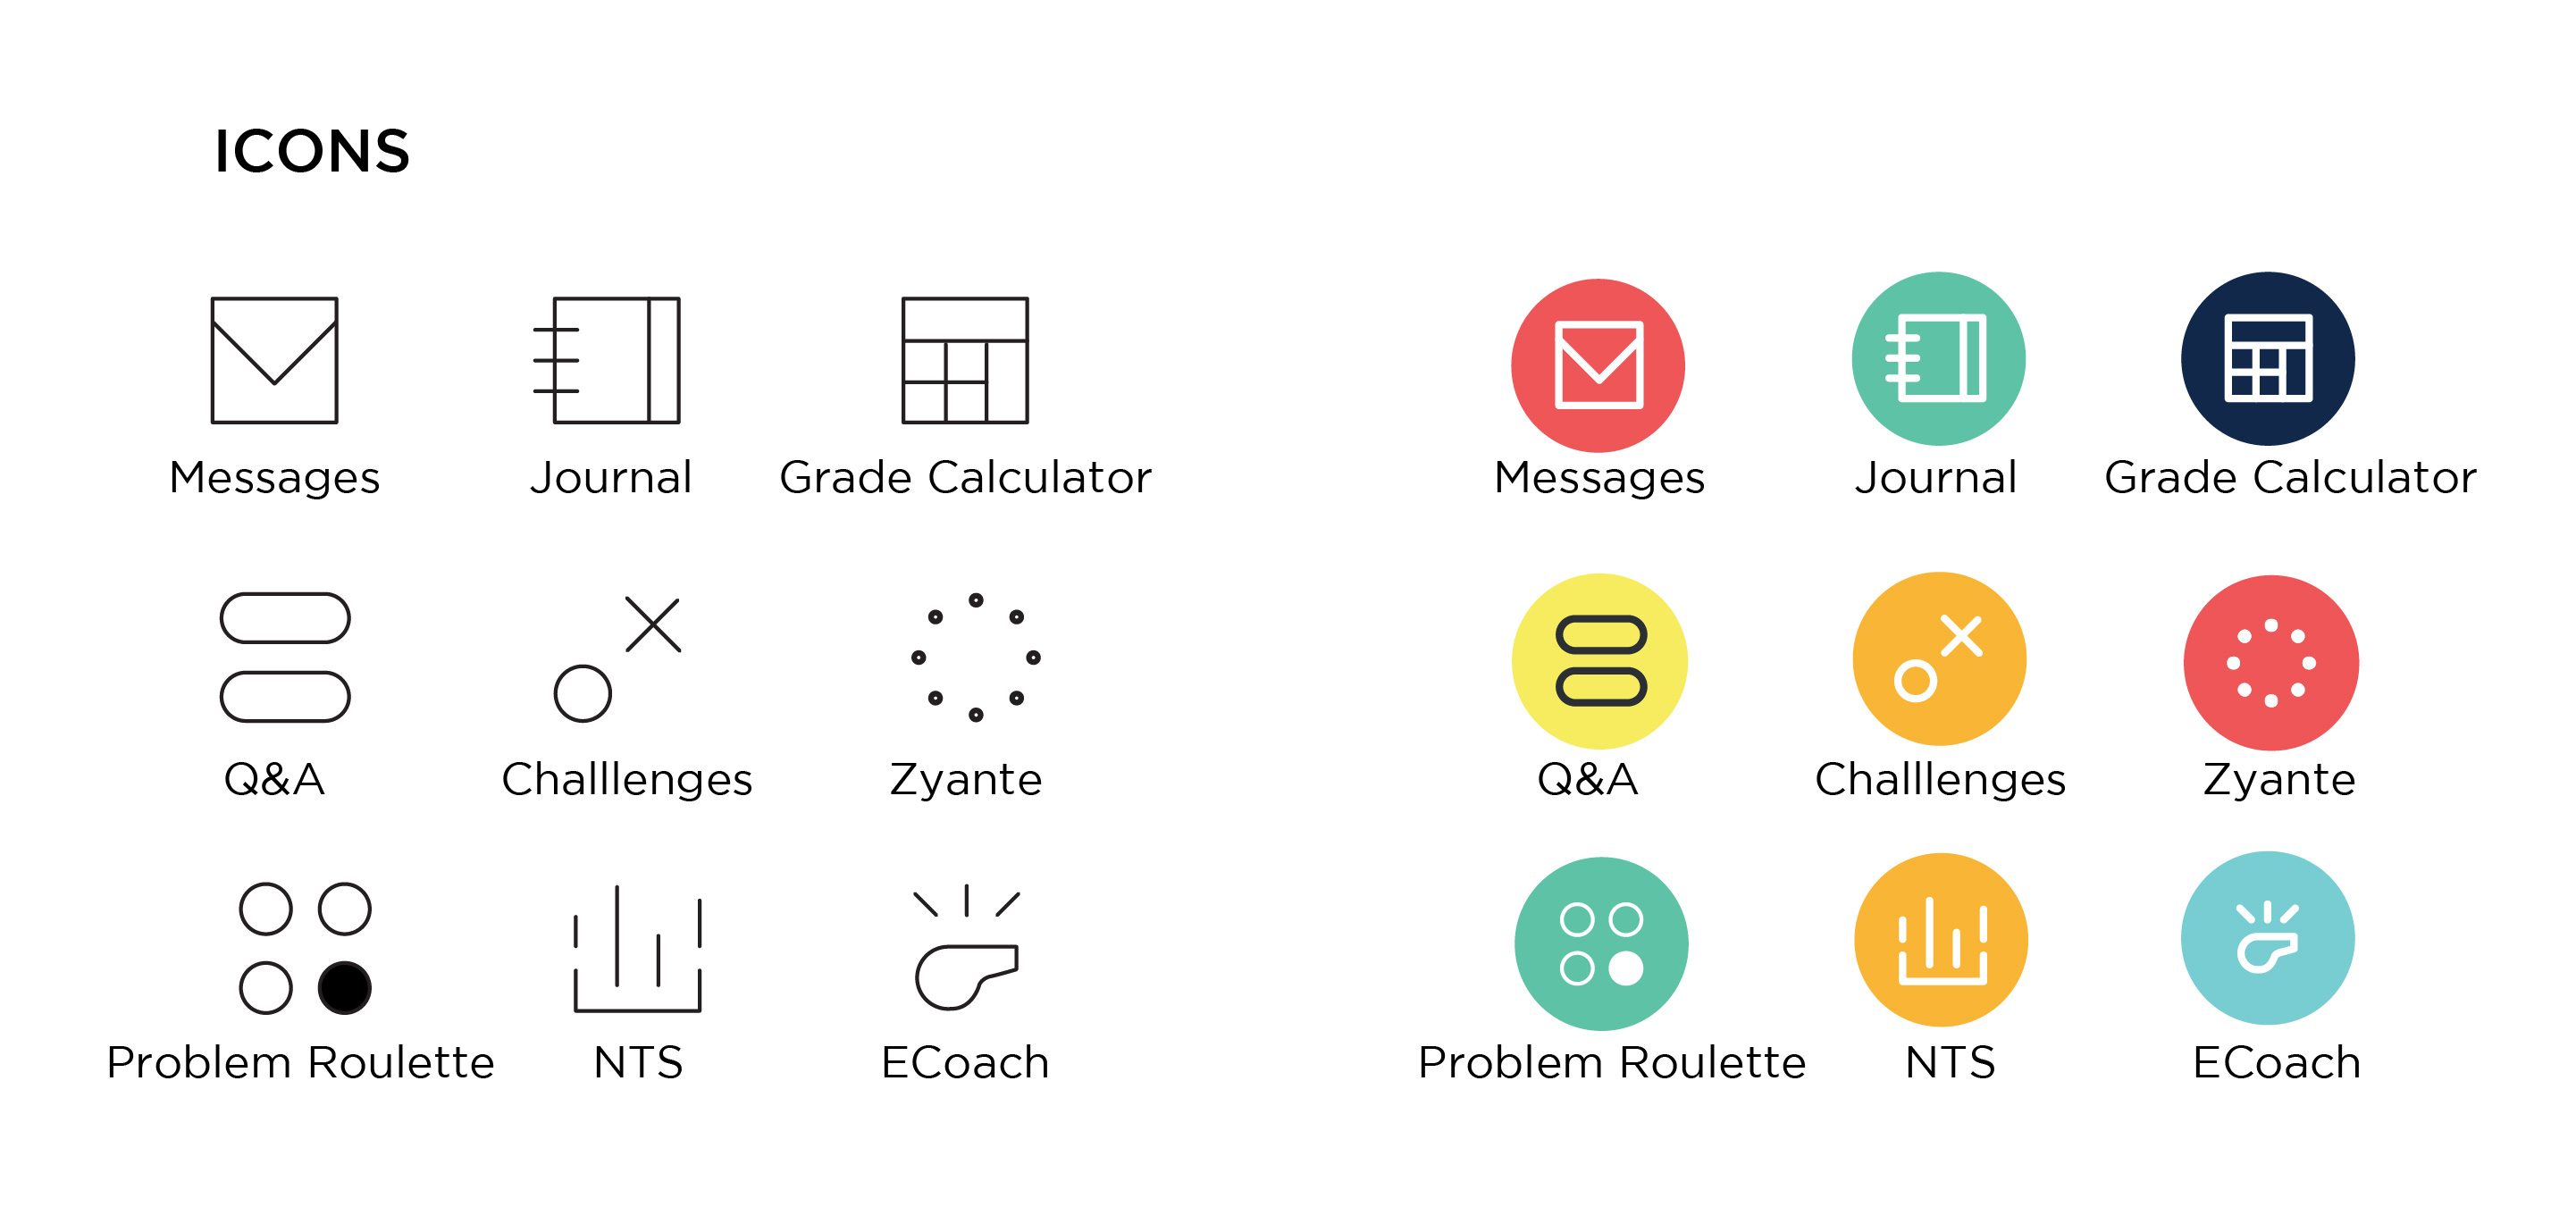 Identity icons for ECoach tools.